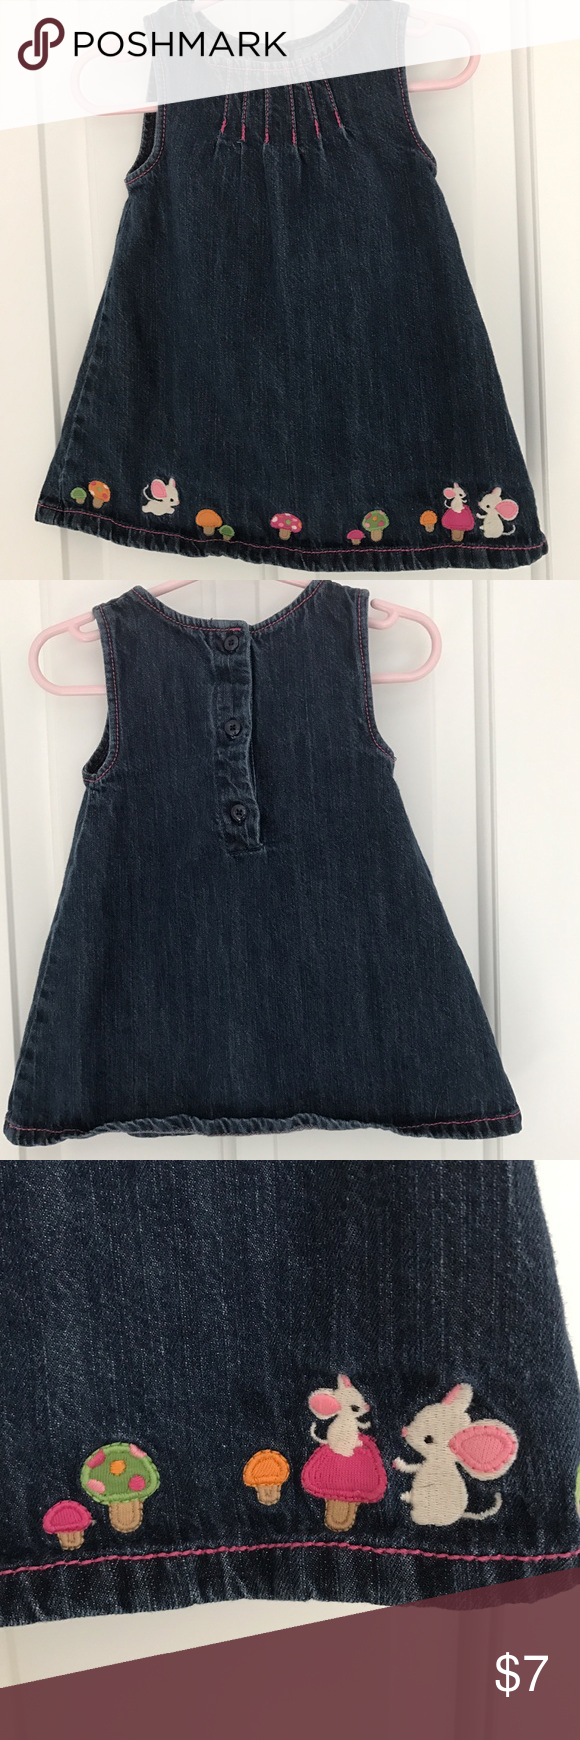 Gymboree denim jumper with pink stitching Gymboree denim jumper with pink stitching. Completely adorable! No stains, no rips', non-smoking household. Gymboree Dresses Casual